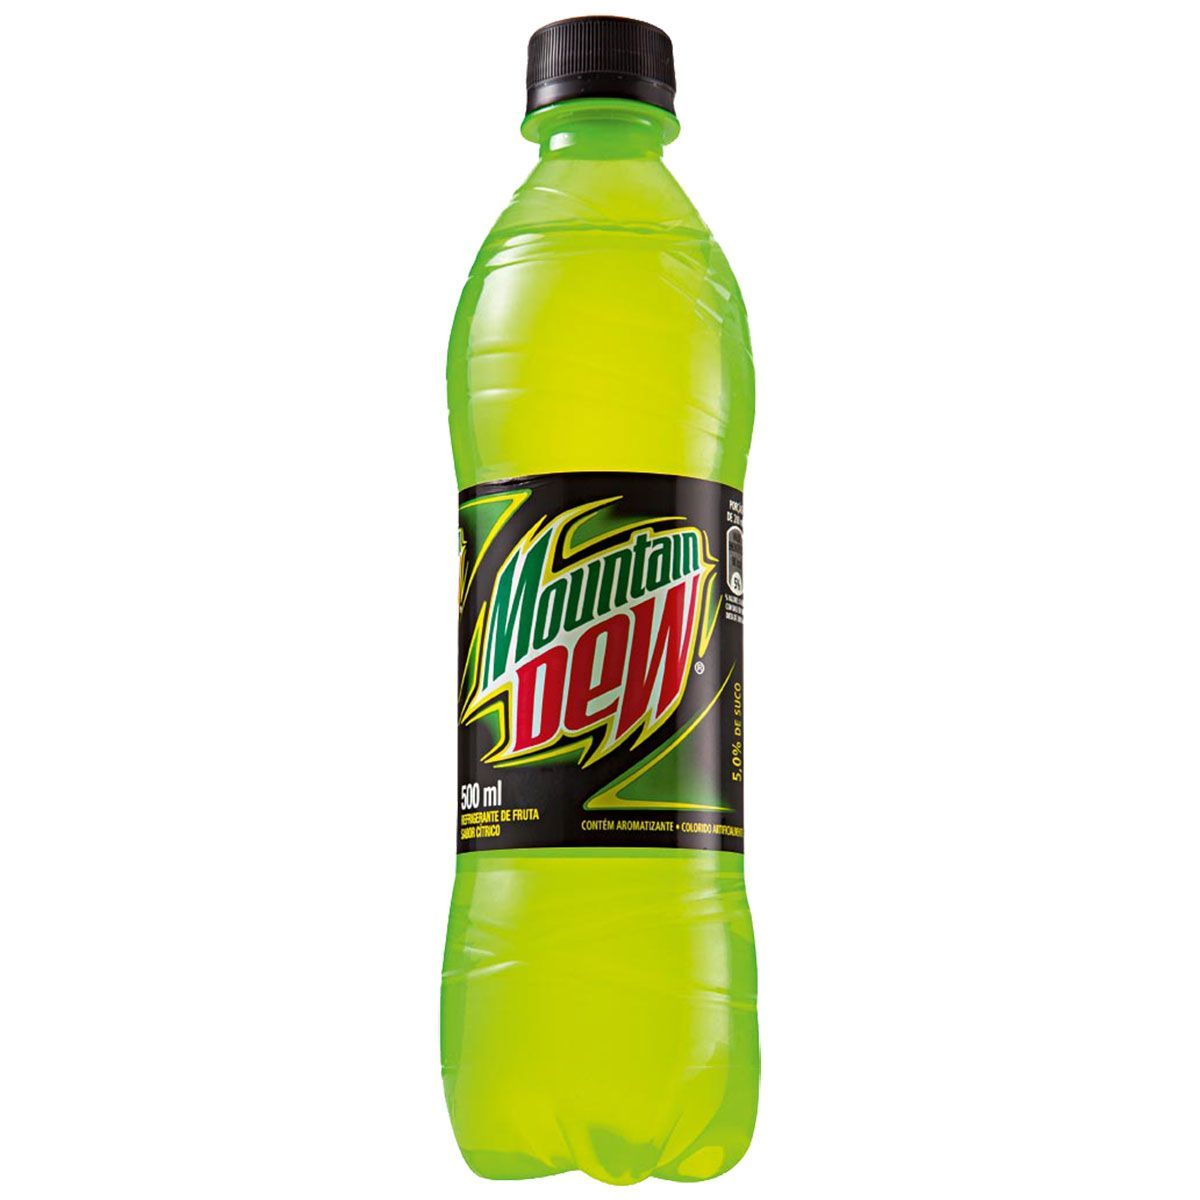 7892840803452 - REFR MOUNTAIN DEW CITRICO